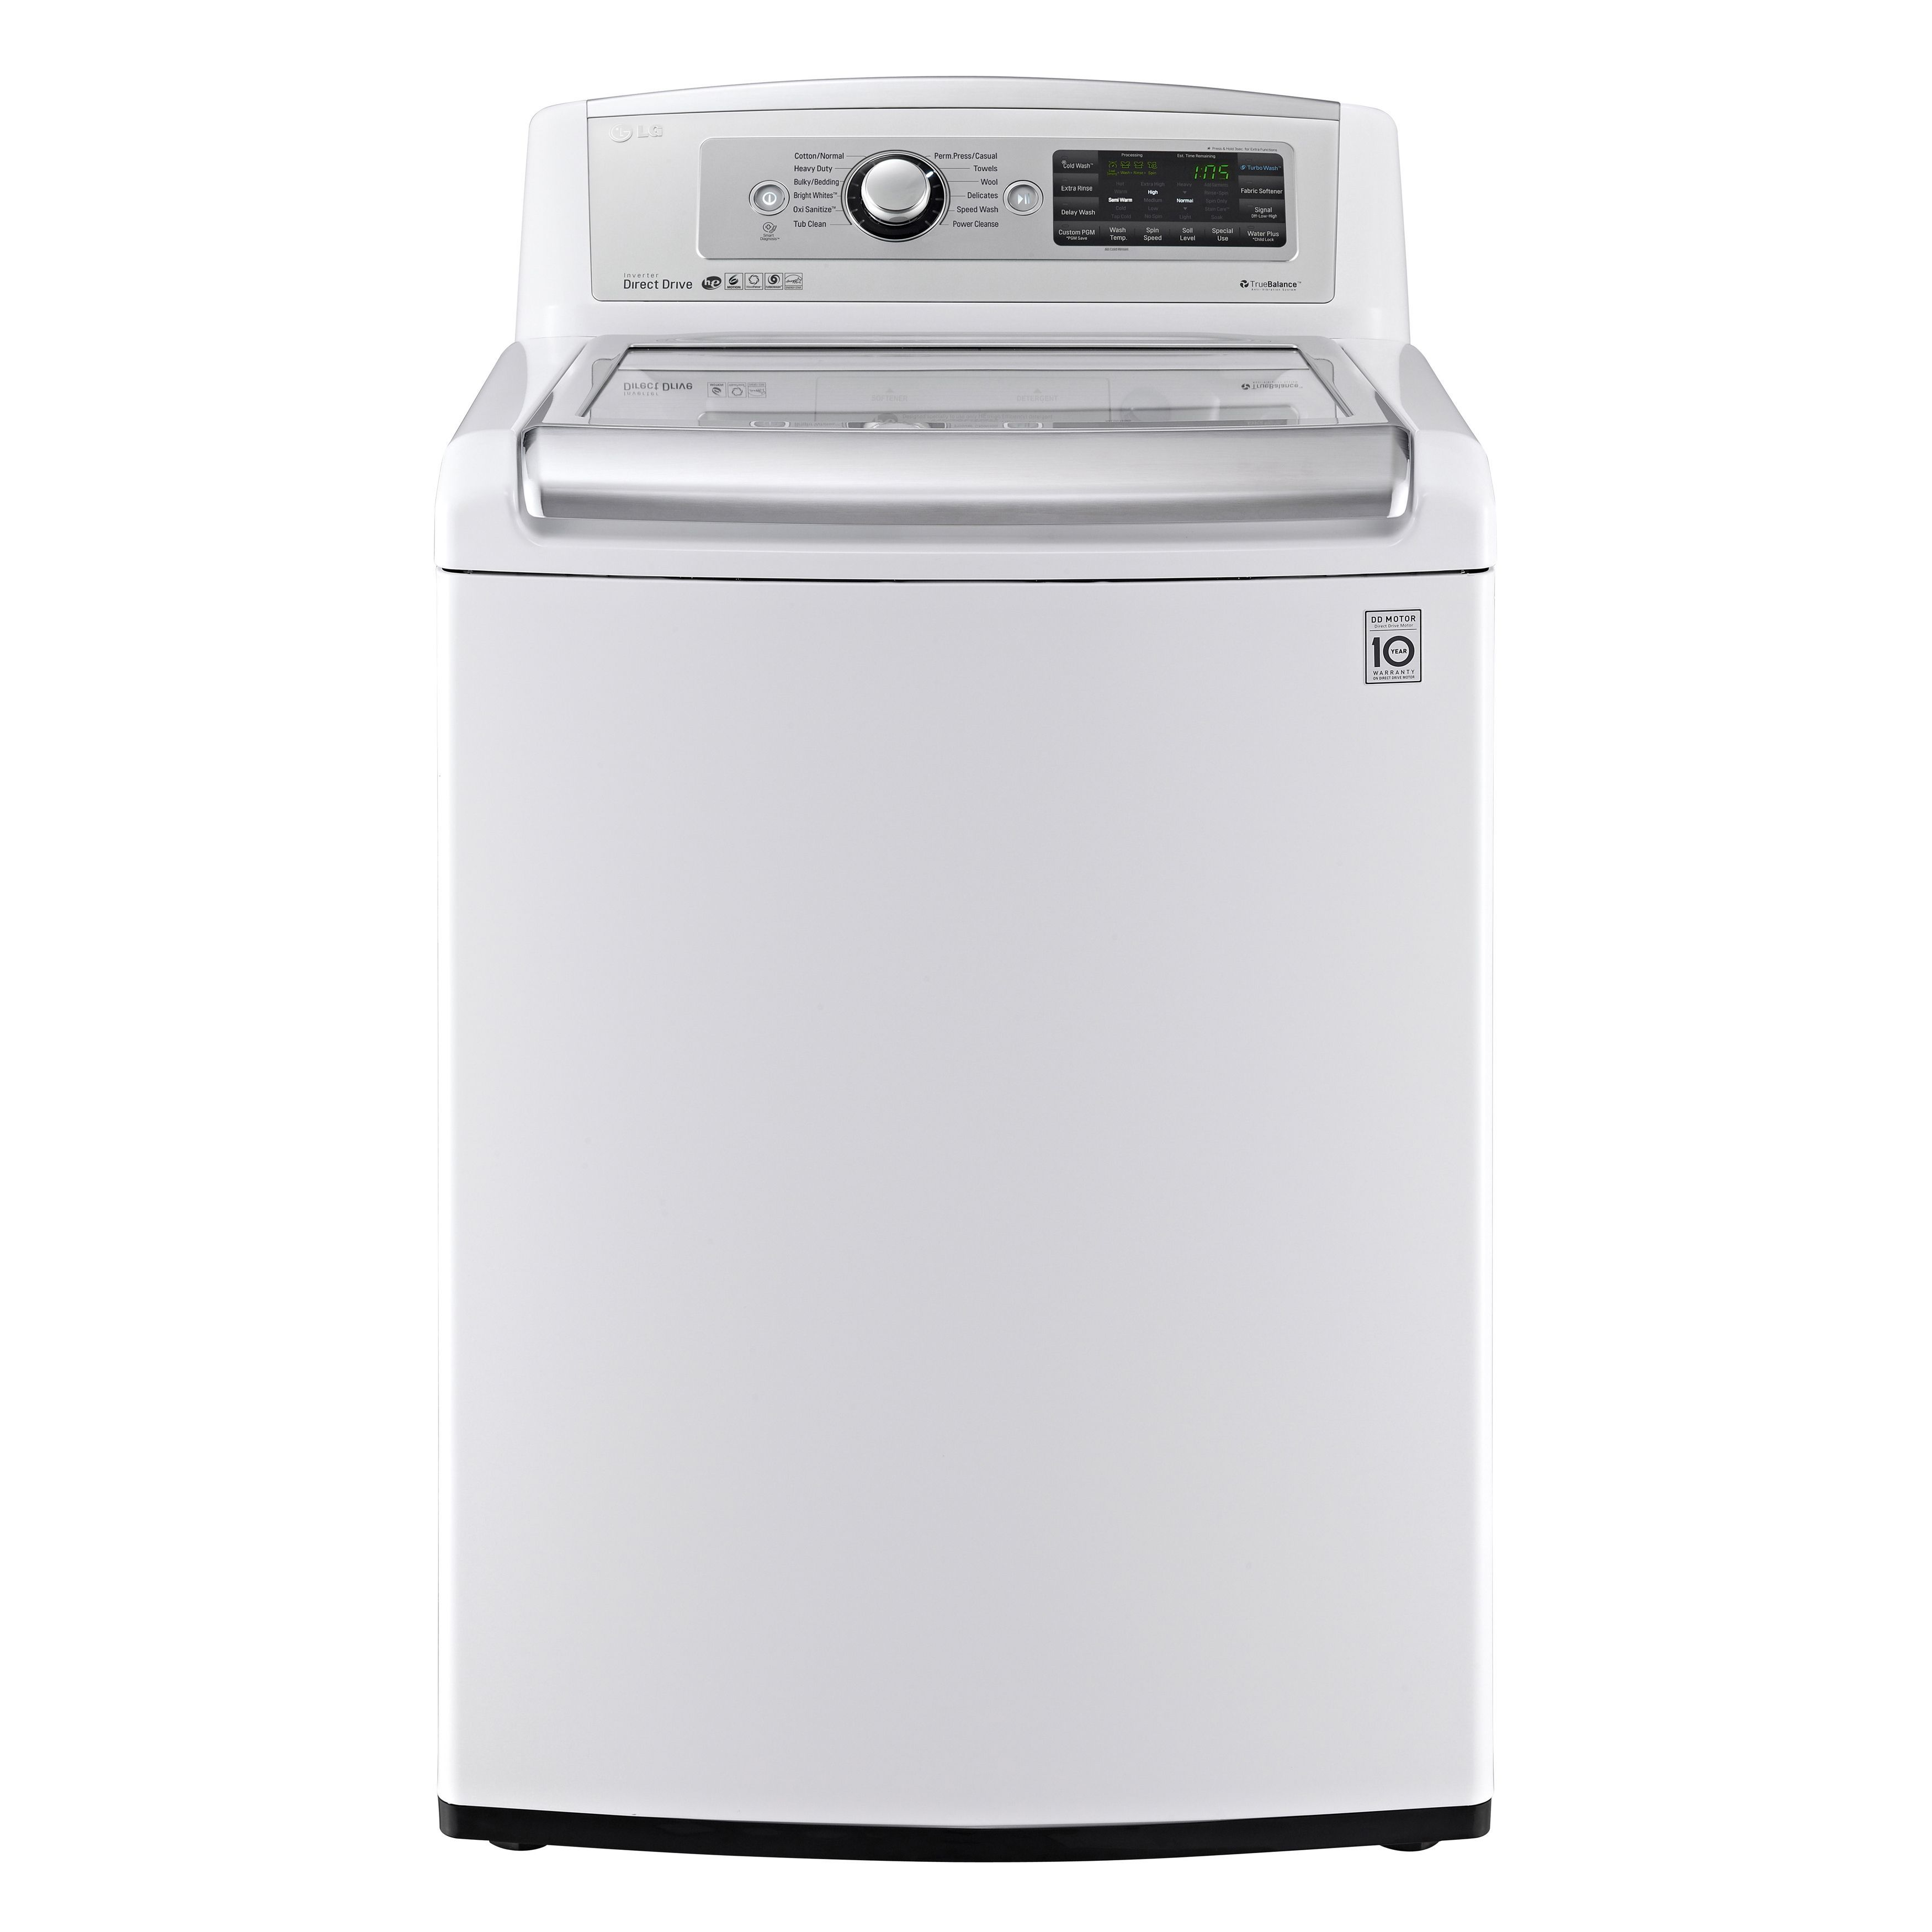 Online Shopping Bedding Furniture Electronics Jewelry Clothing More Washer Cool Things To Buy Washing Machine